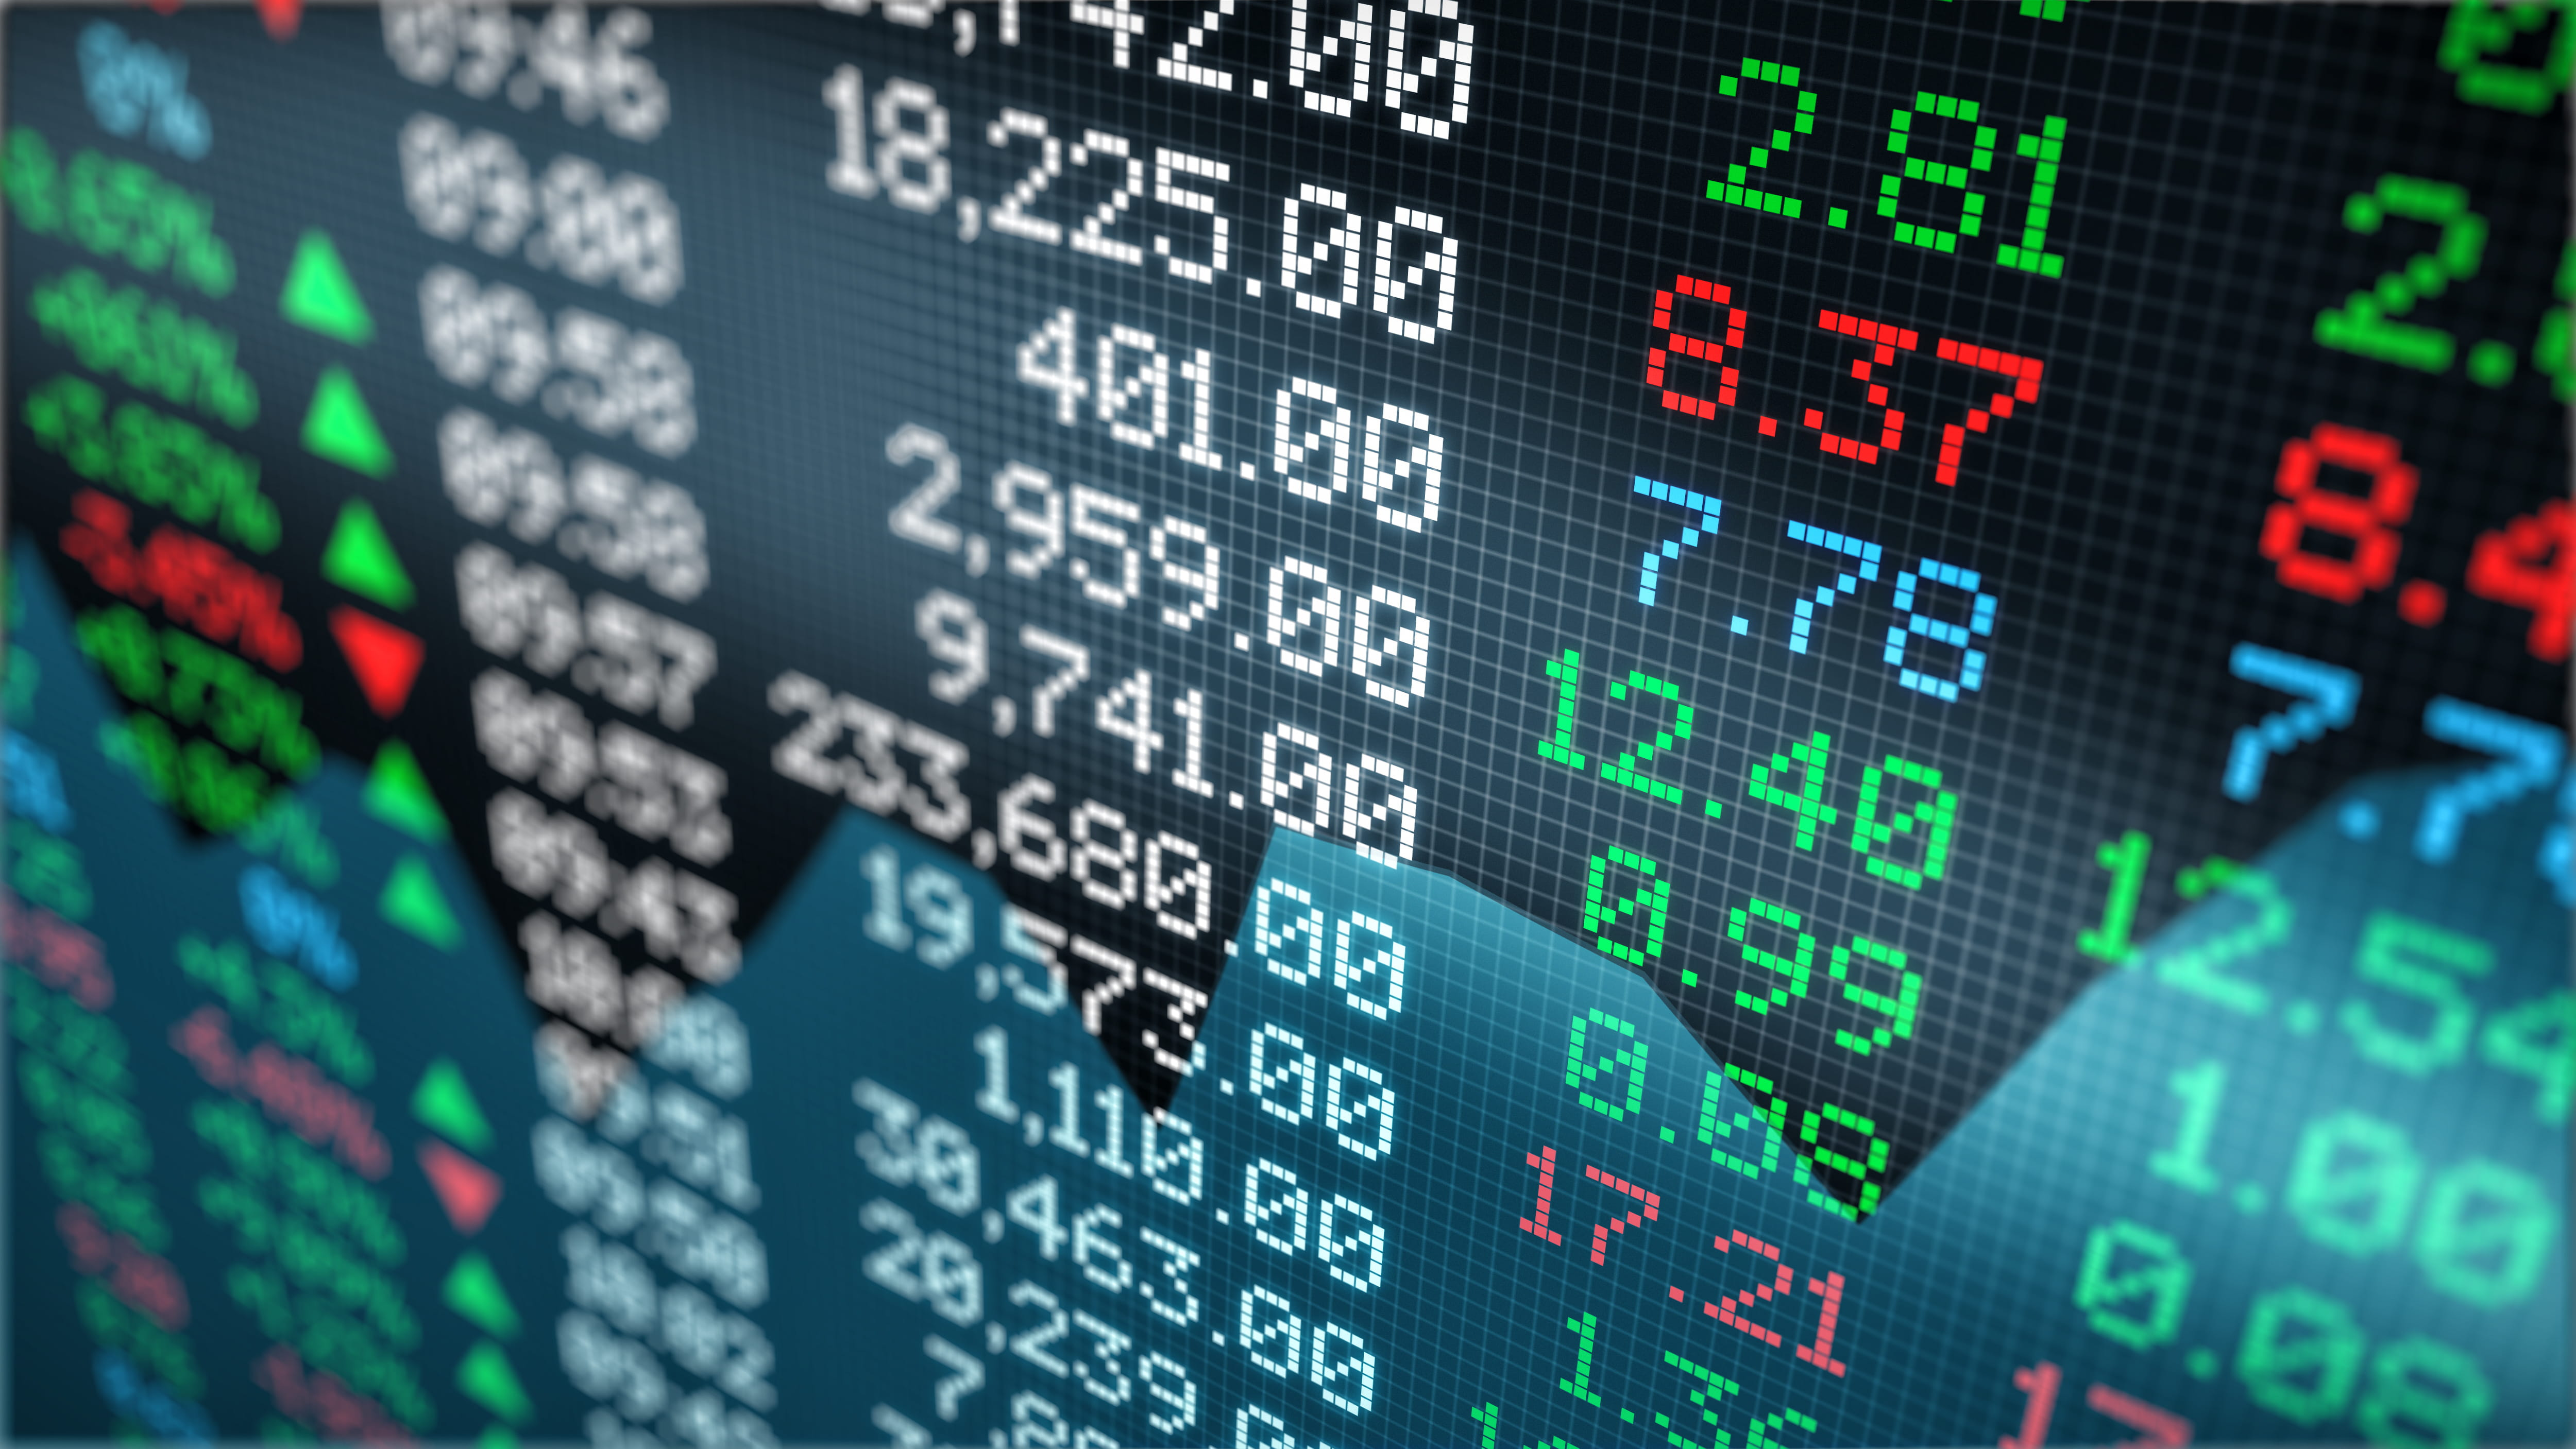 close-up view of a stock market data board